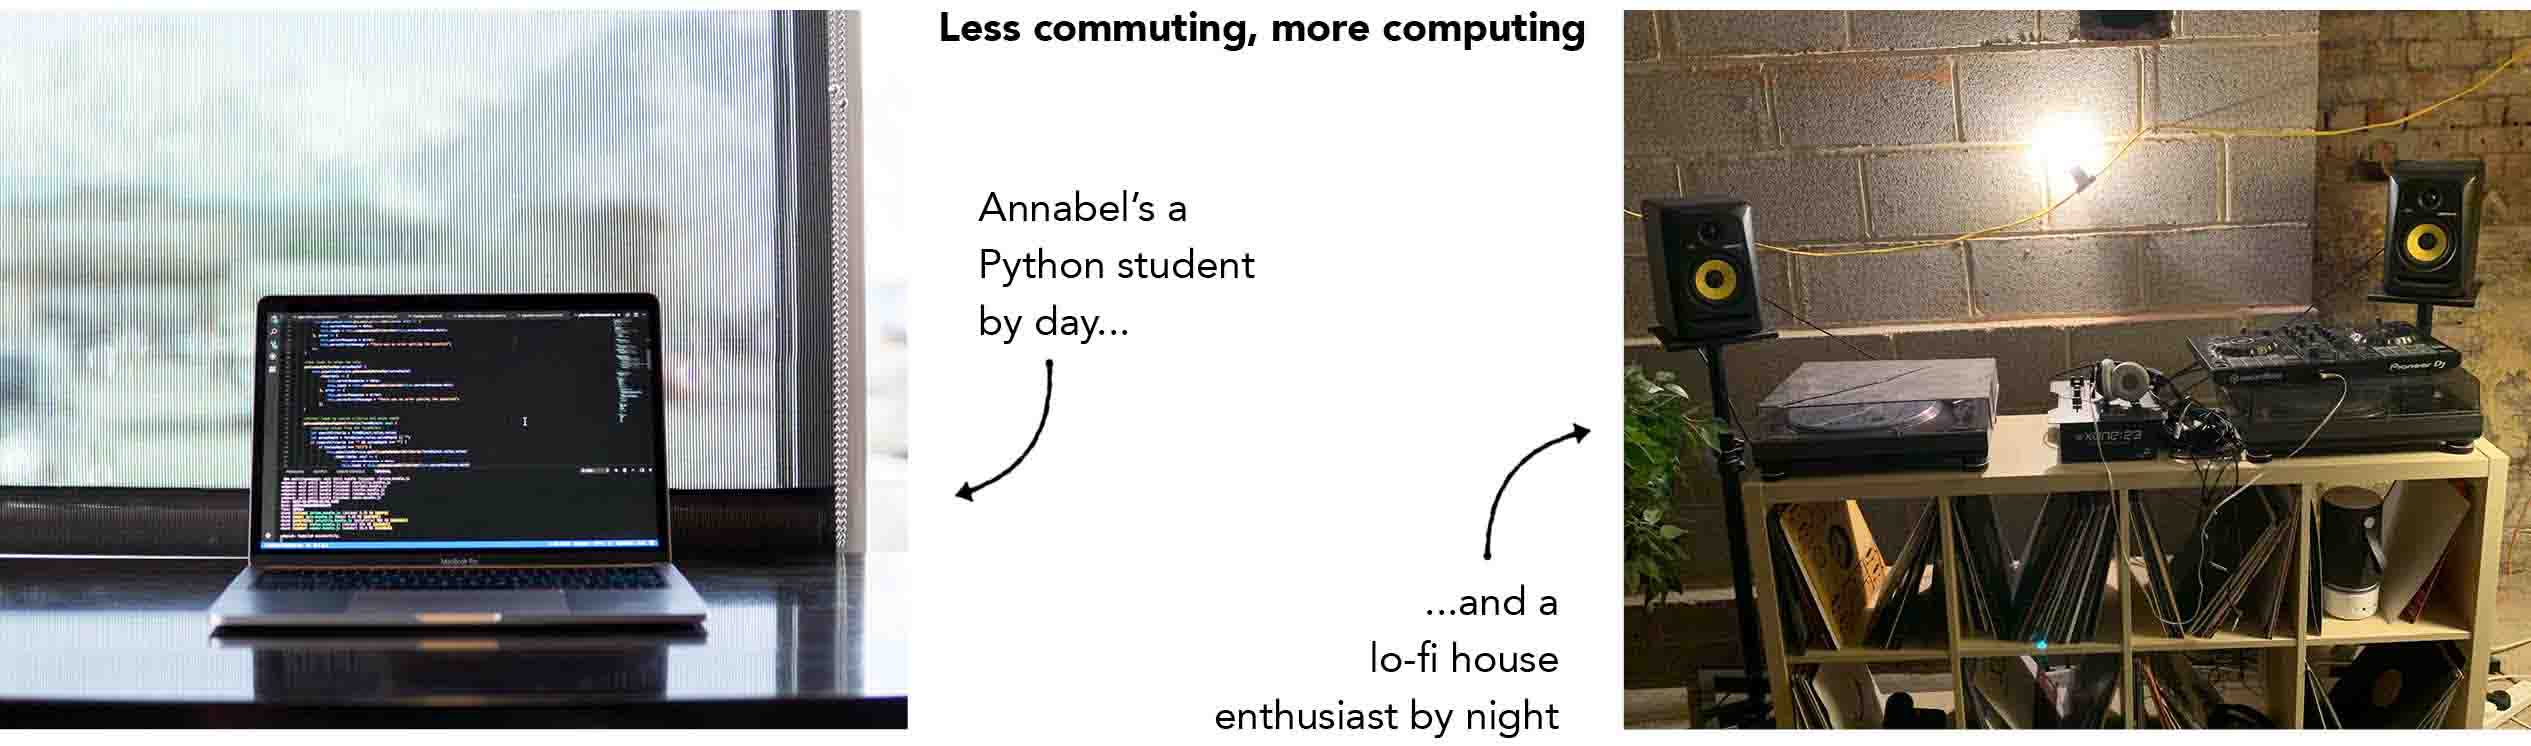 Annabel's been studying Python by day, and DJing by night...)